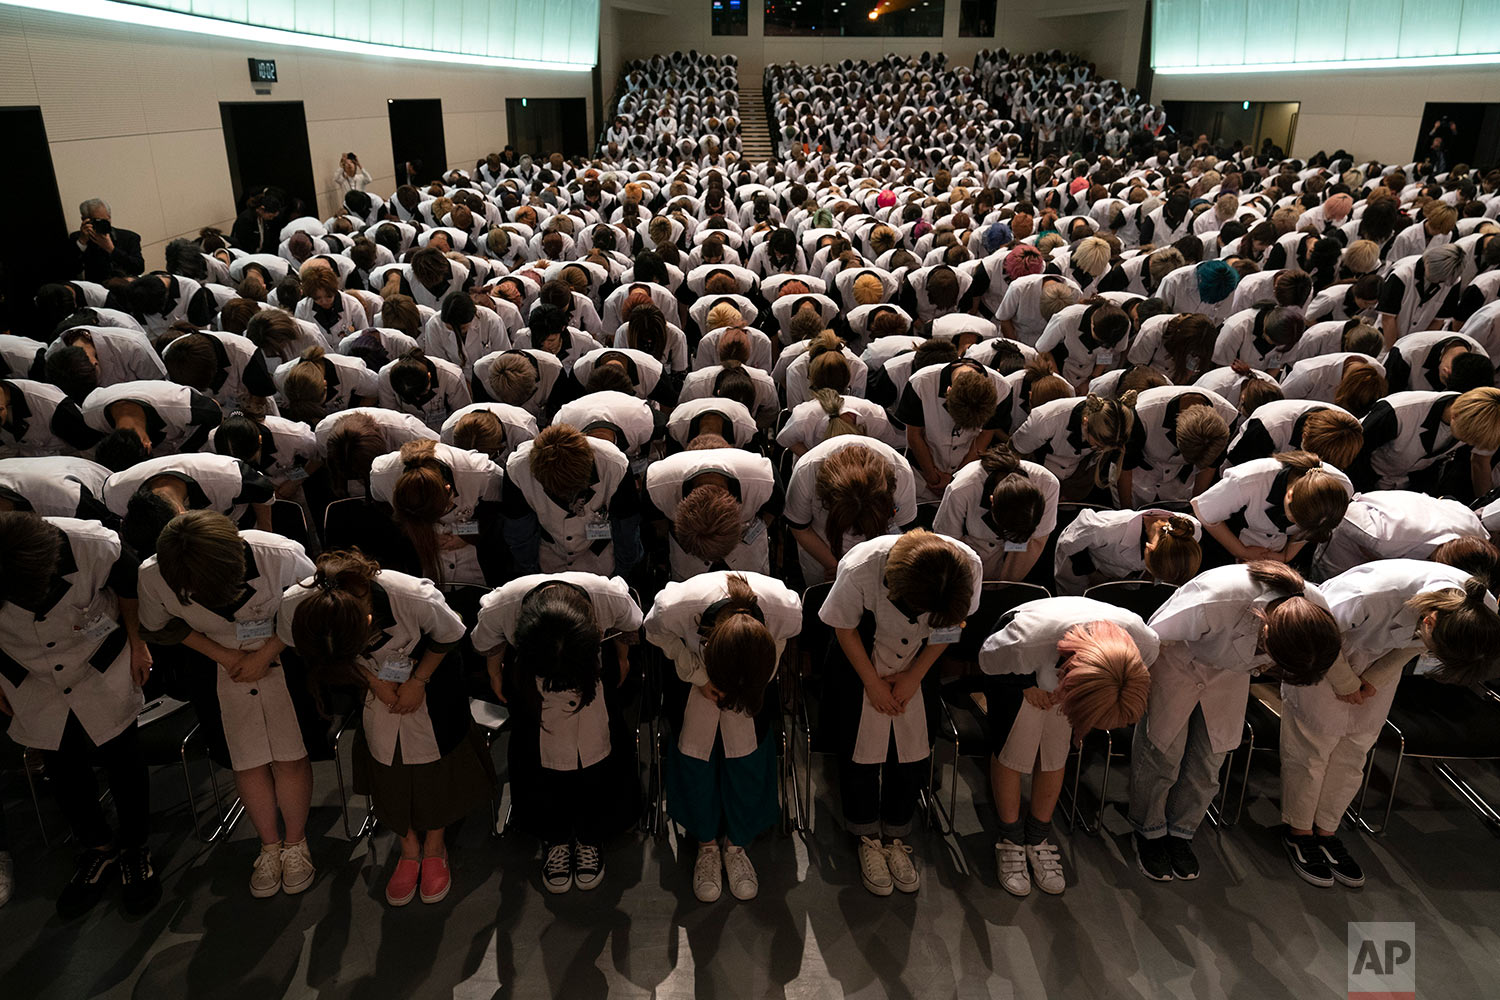 Wearing school uniforms, students at Yamano Beauty College bow to a speaker during a ceremony held to celebrate the school's 83rd year anniversary in Tokyo, May 31, 2019. More than 1200 students from all over Japan are attending the school to be hair stylists or makeup artists. (AP Photo/Jae C. Hong)